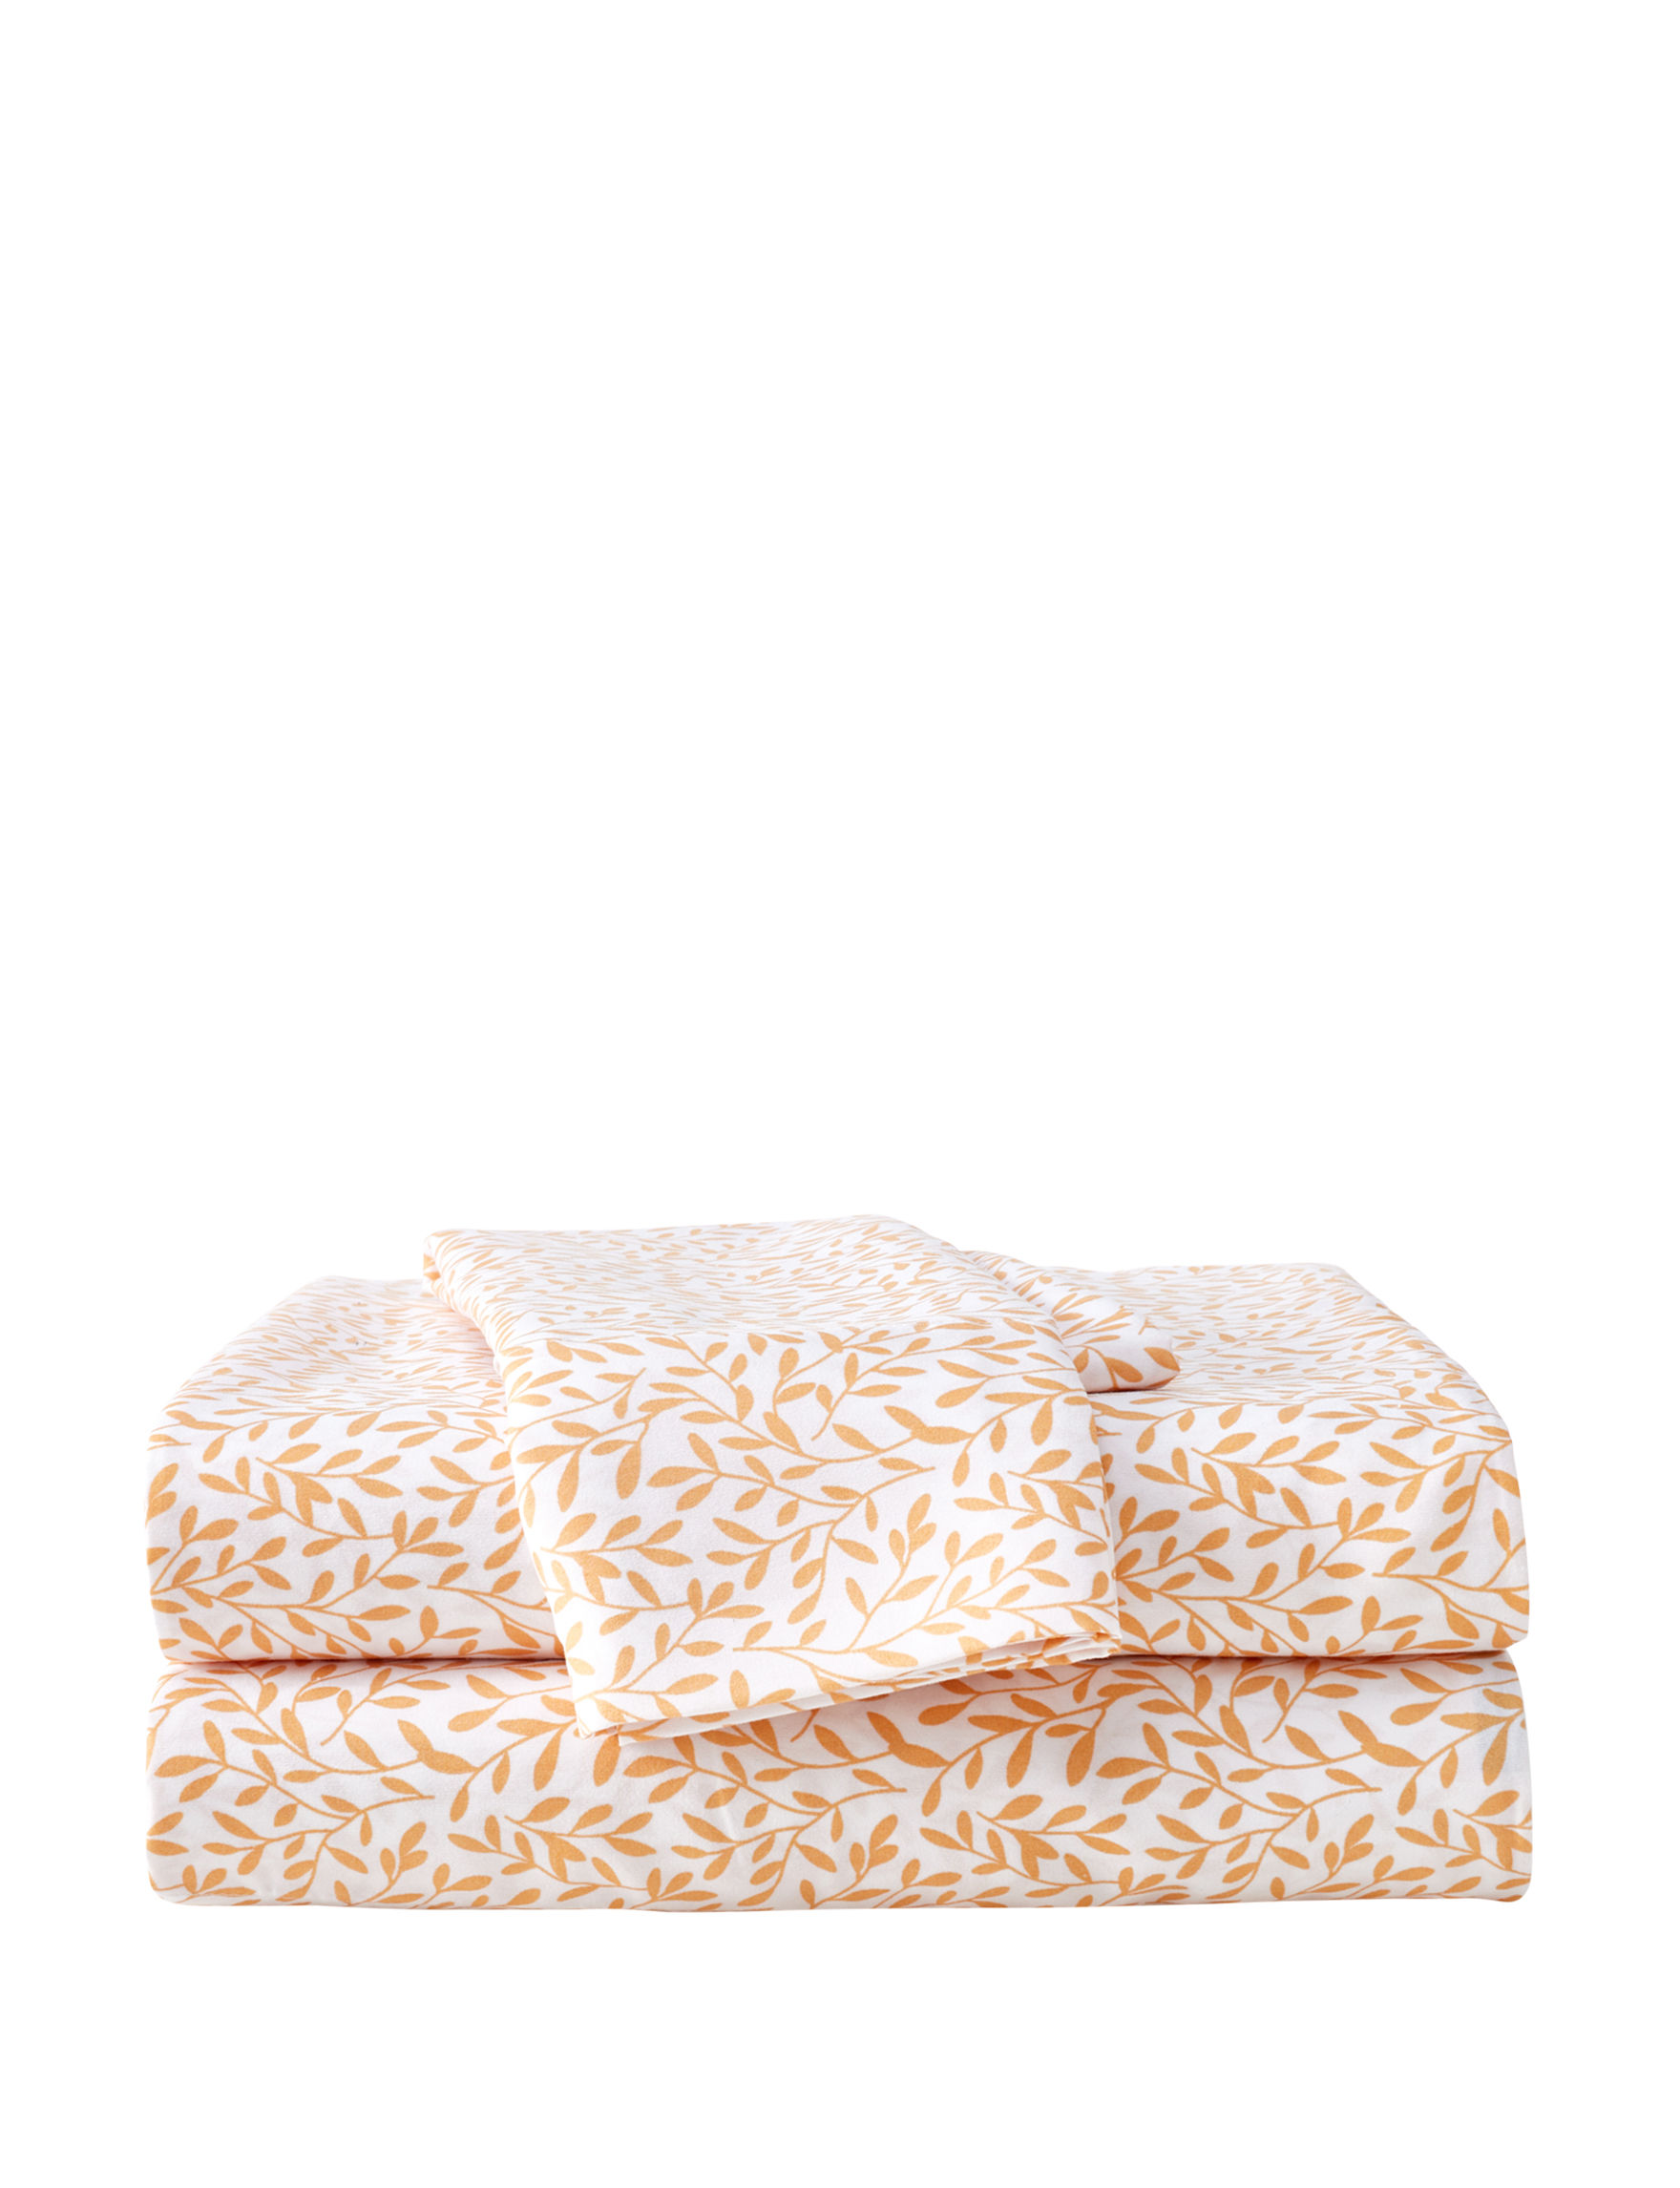 Great Hotels Collection Gold Sheets & Pillowcases